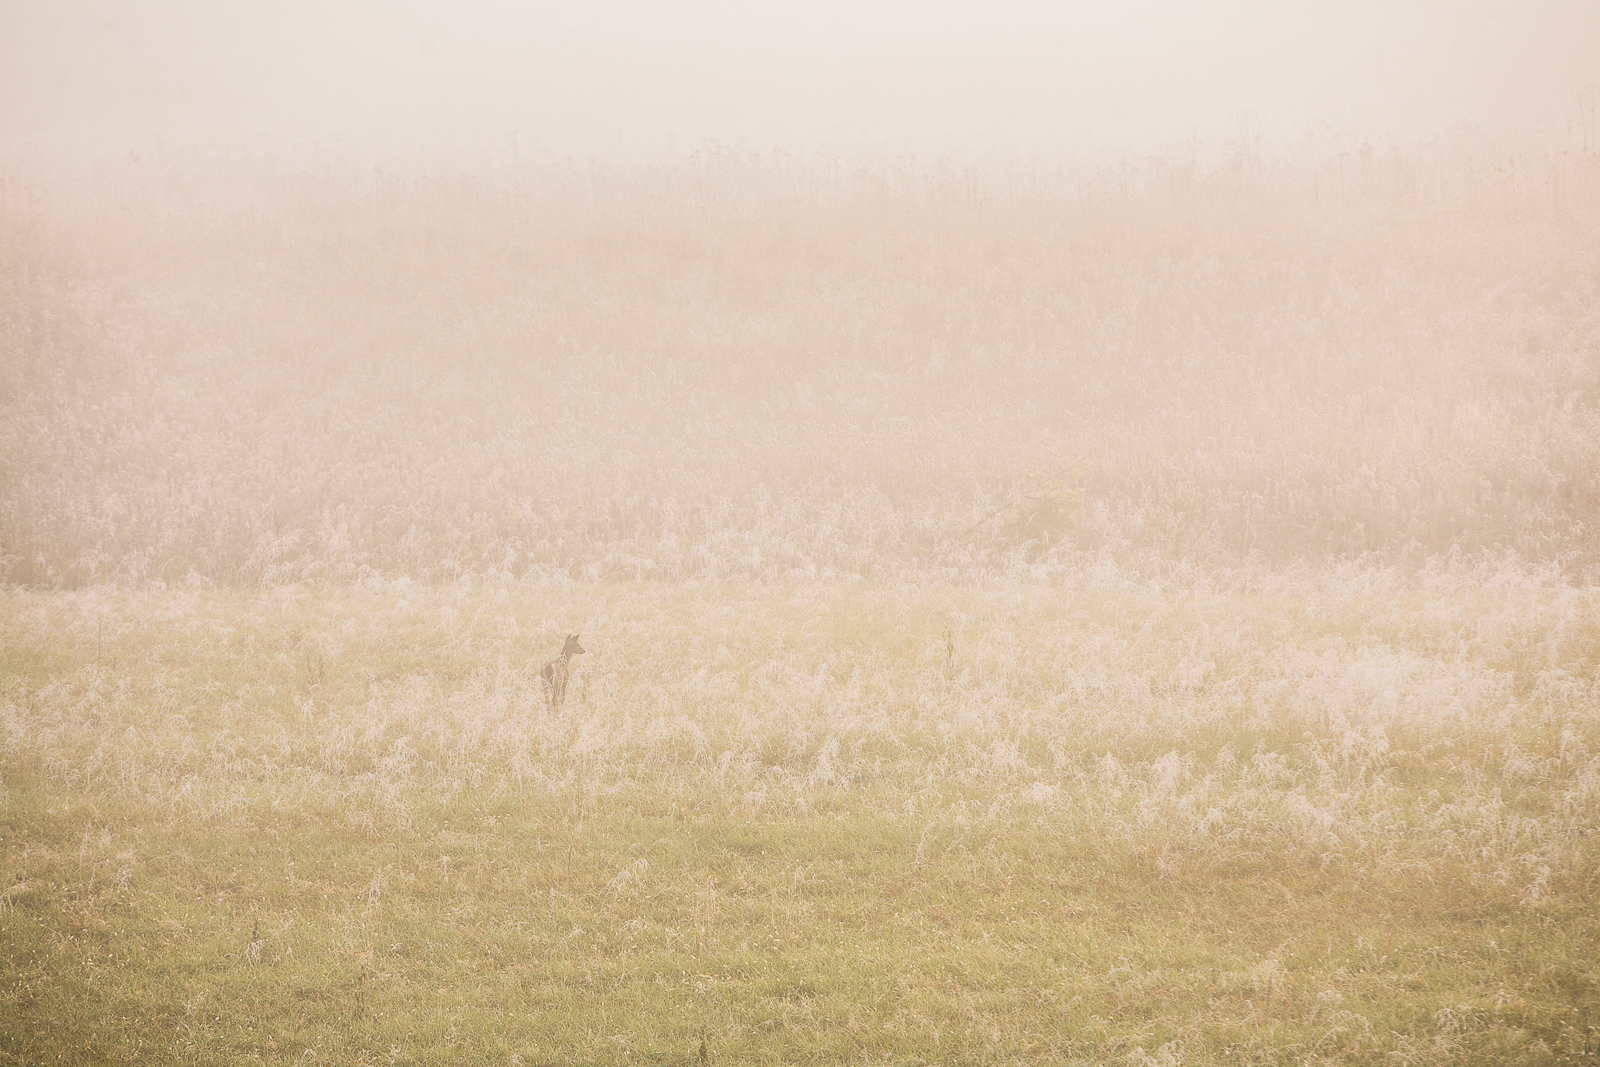 Morning Mist,Morning,Mist,smoke,mountain,park,deer,grass,Light, photo